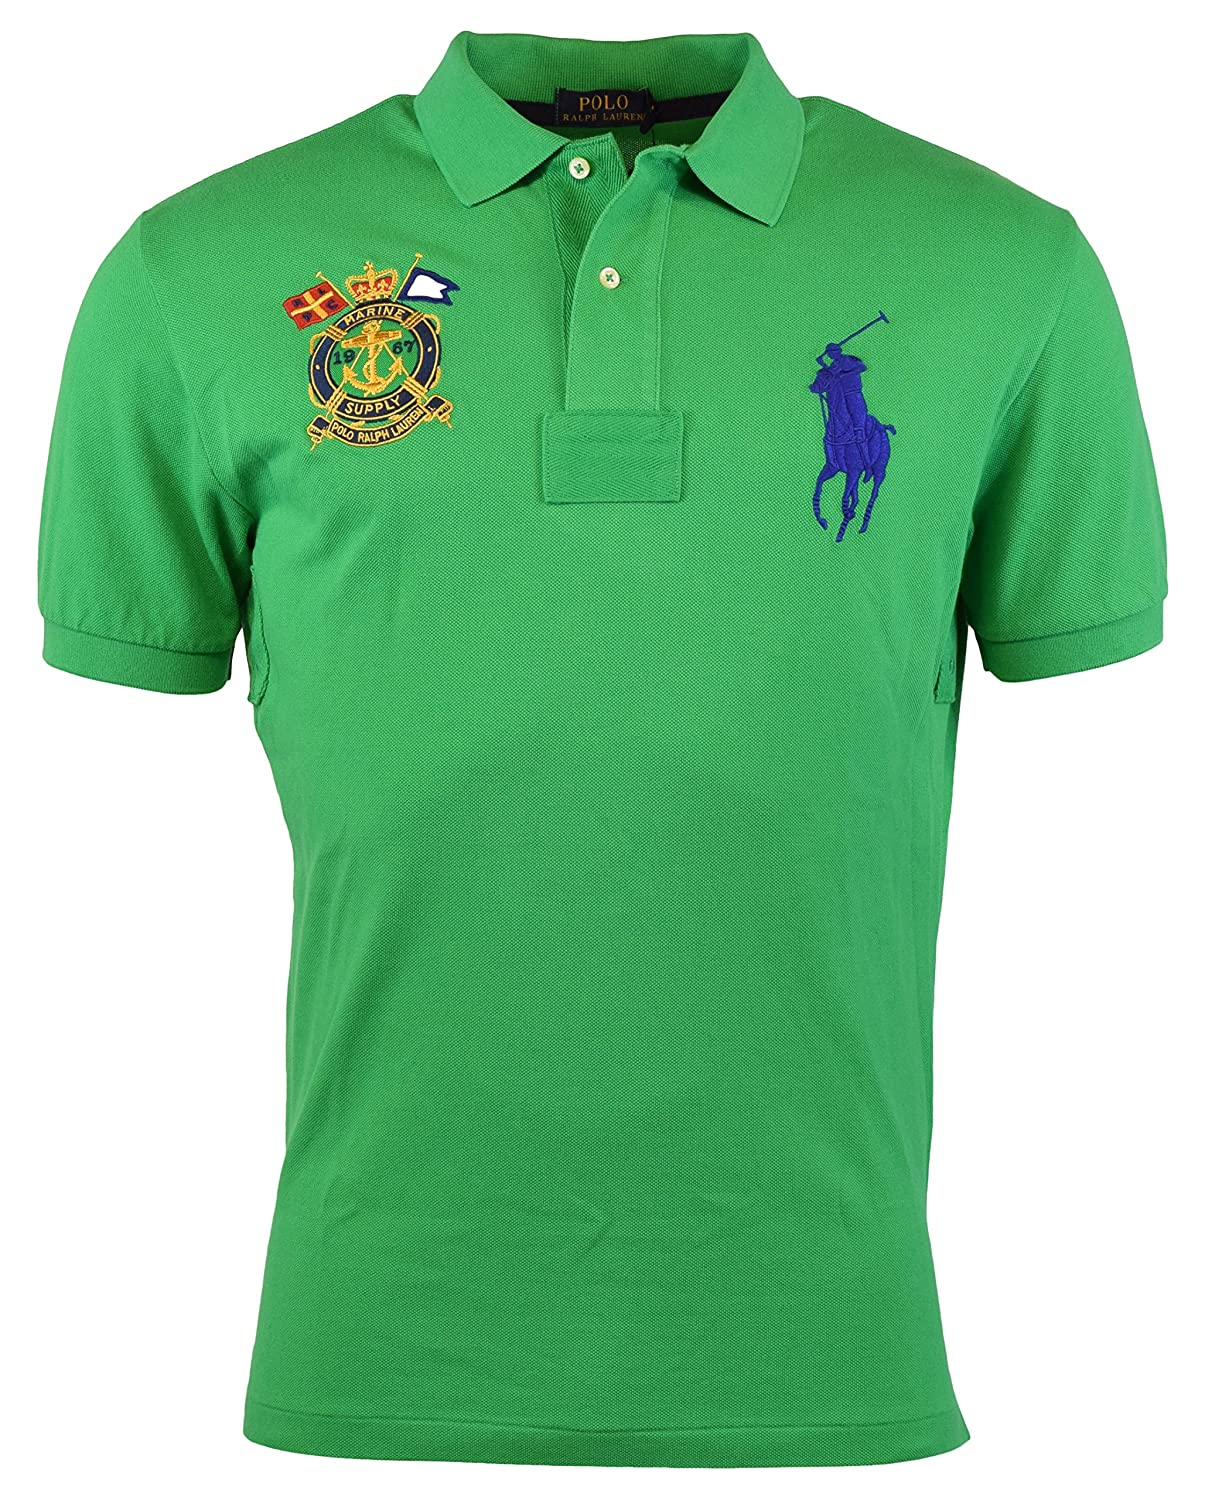 3d3131592 Polo Ralph Lauren Men's Classic-Fit Nautical-Crest Polo Shirt, Stem Green,  XL at Amazon Men's Clothing store: